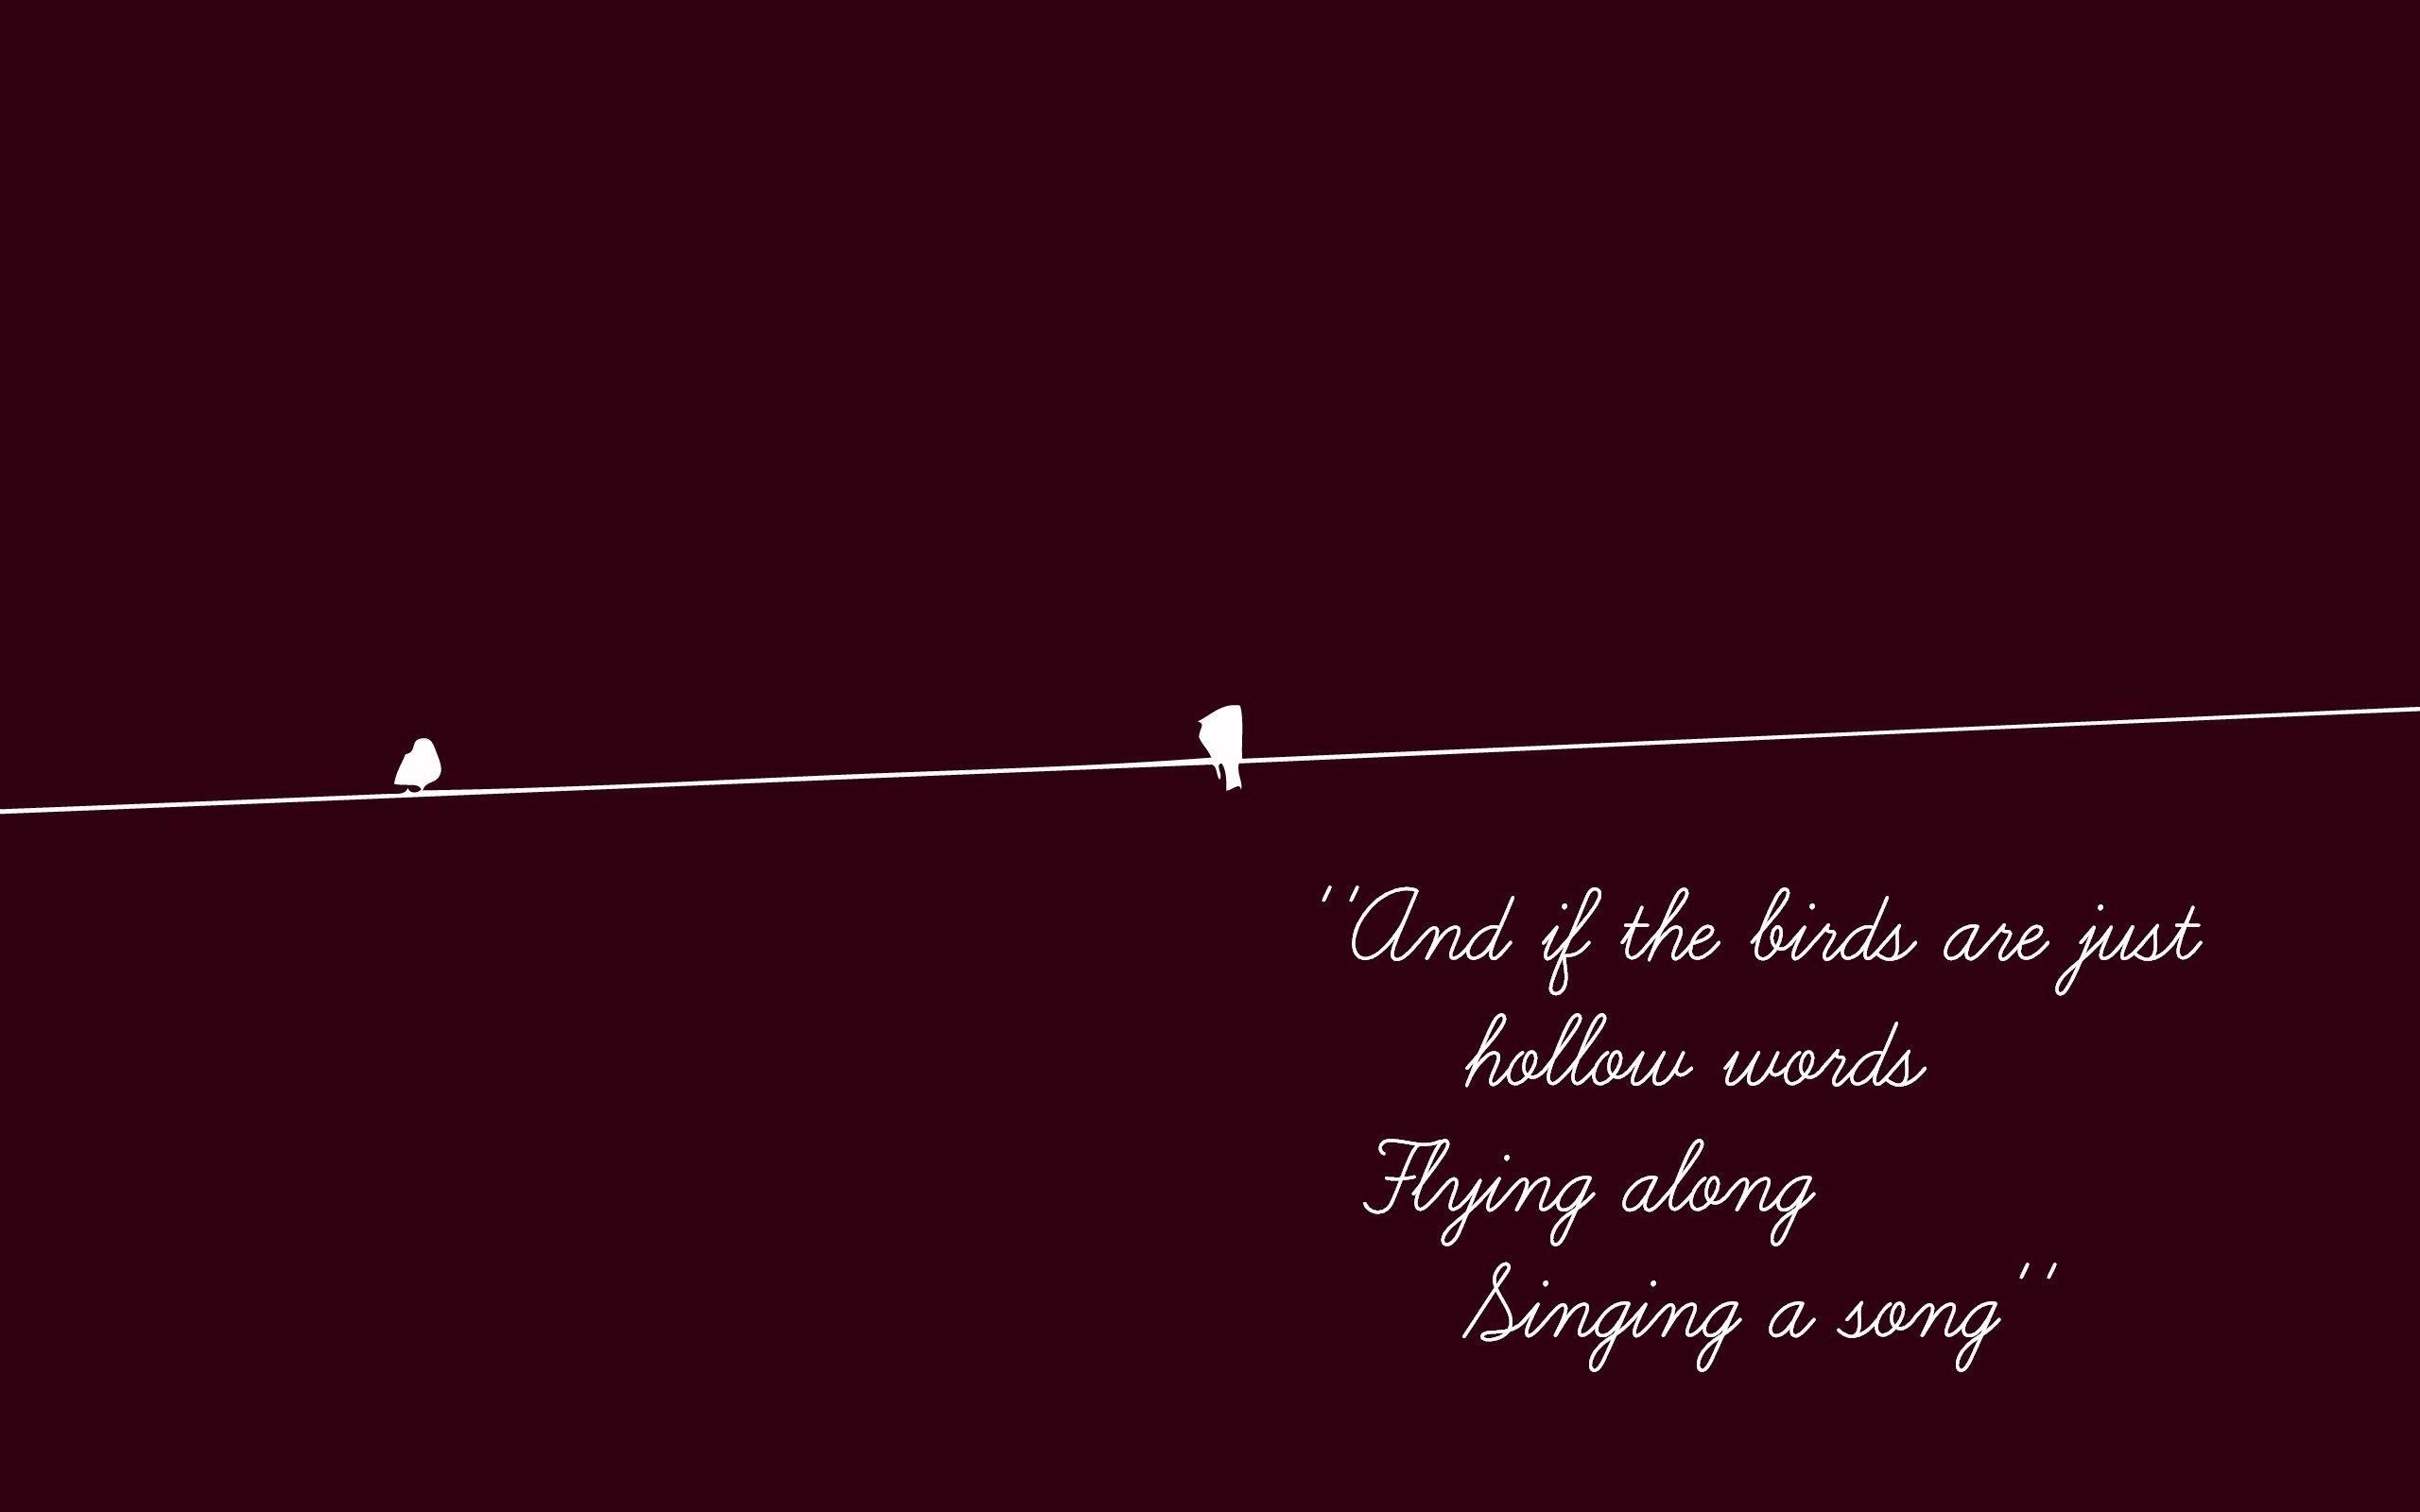 panic at the disco wallpapers ·①